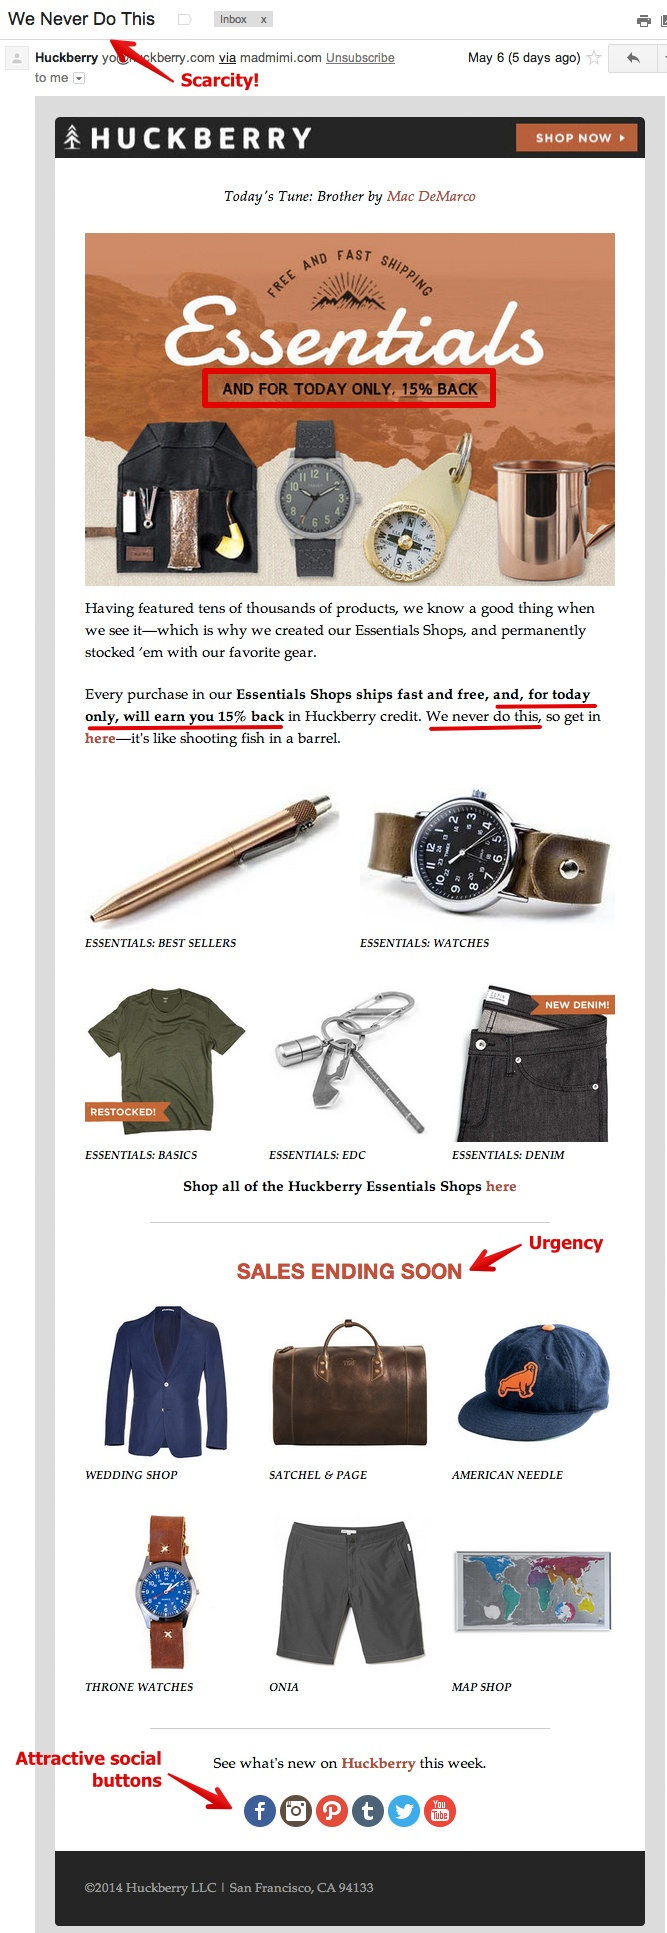 email marketing 7